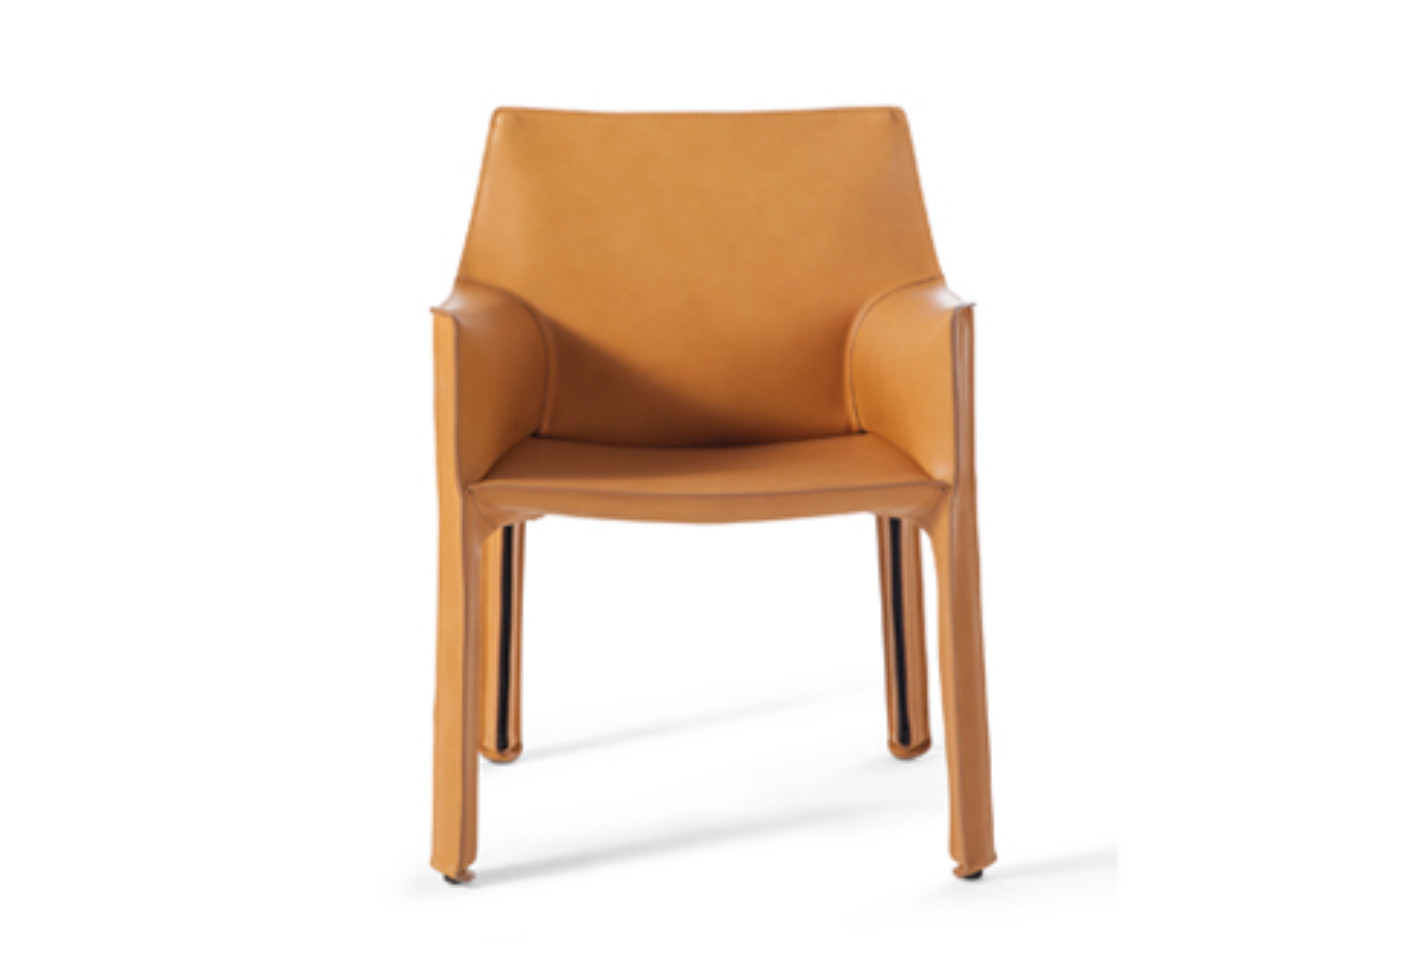 Cab 413 Armchair By Cassina Stylepark